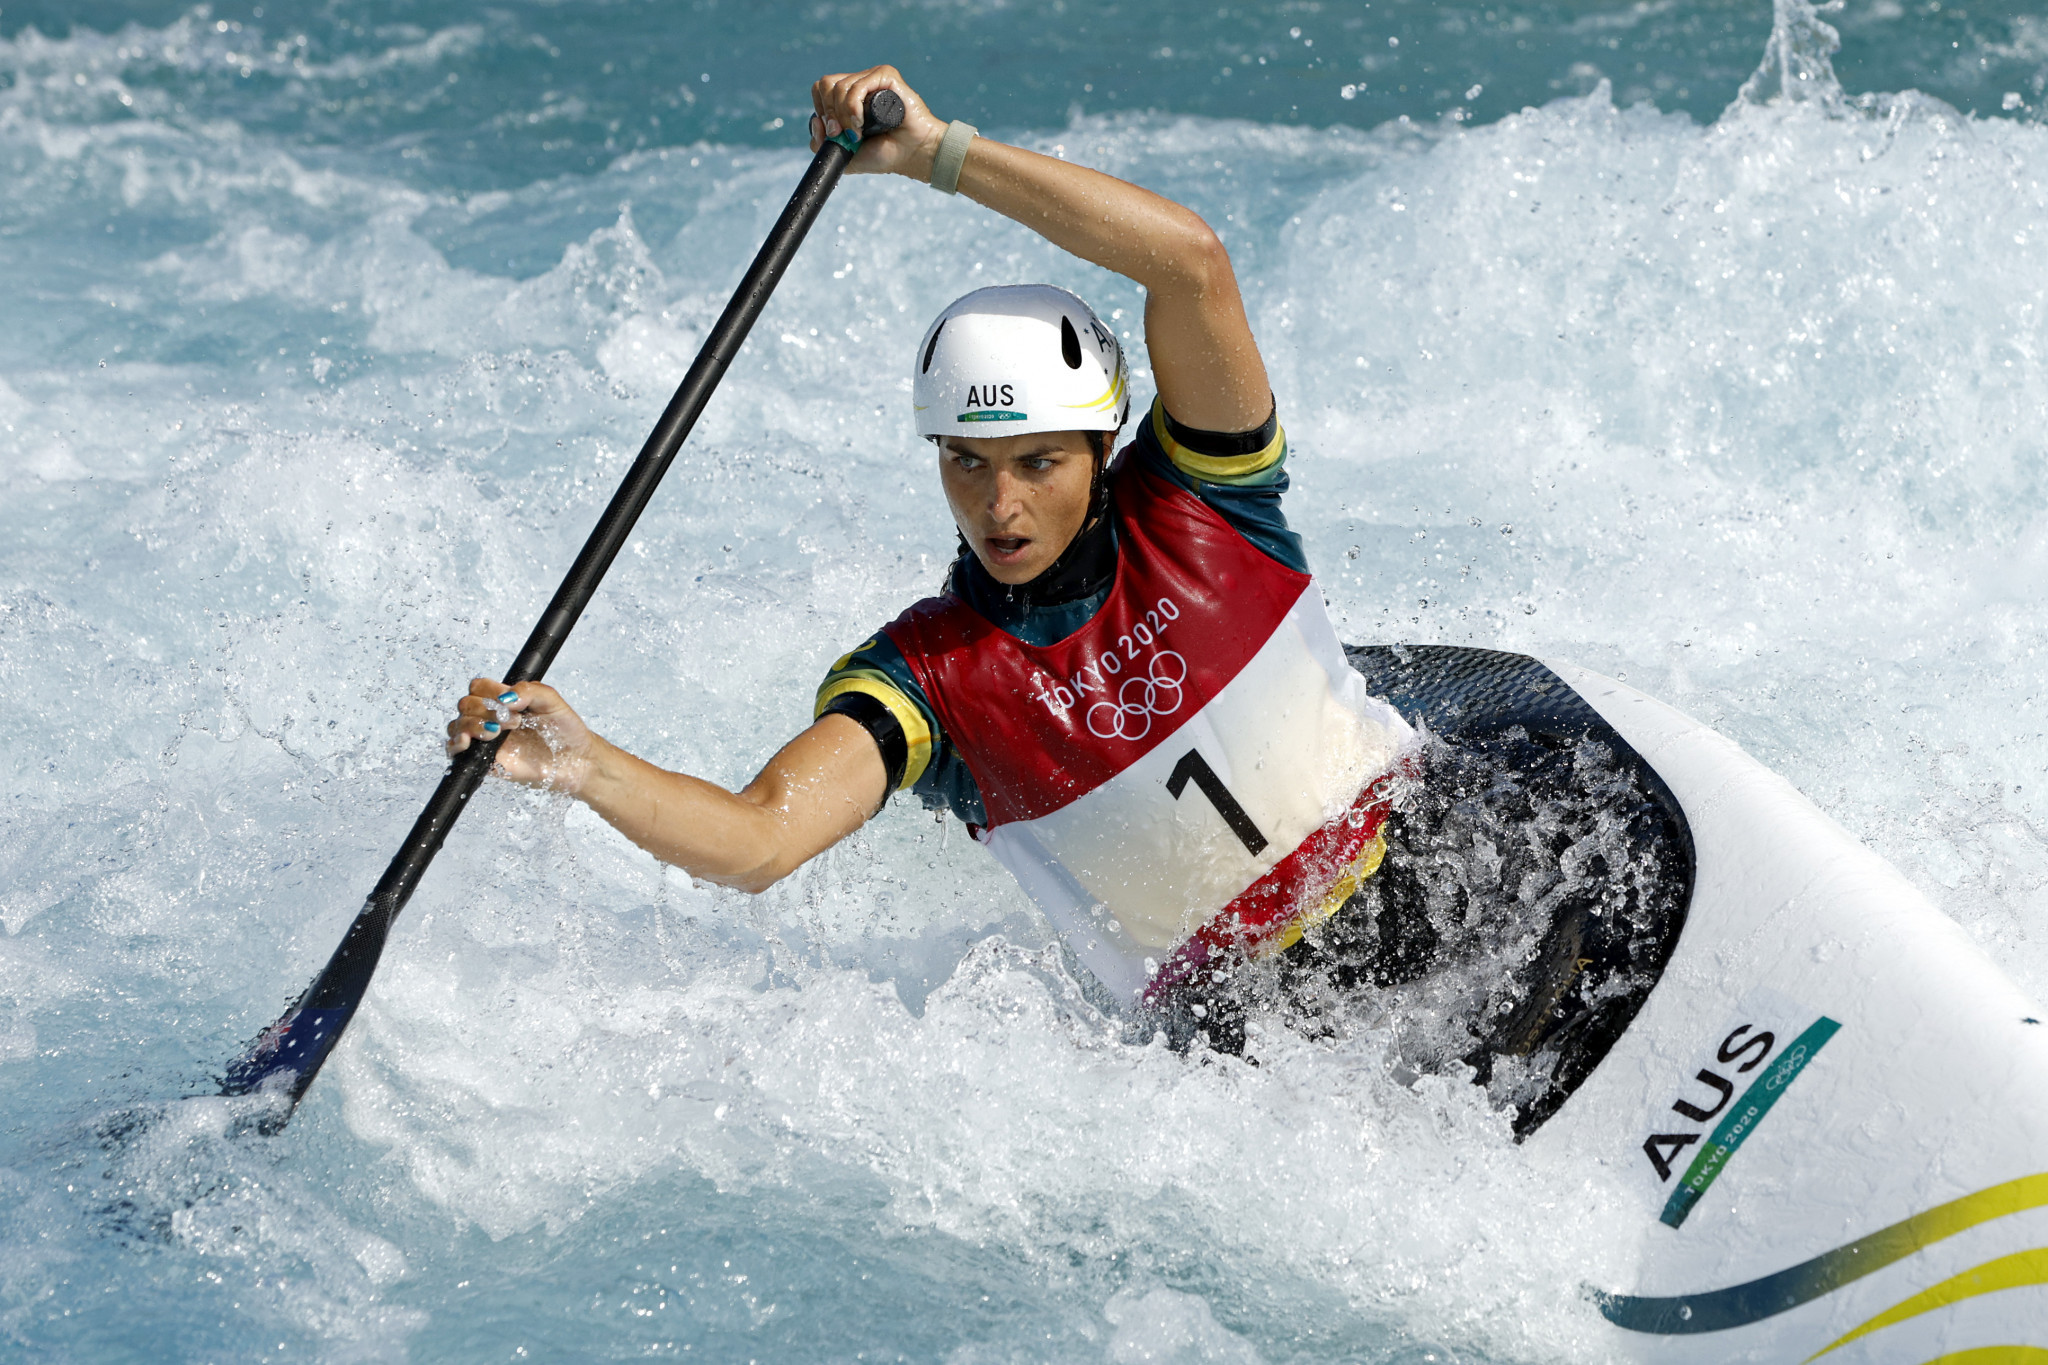 Fox and Přindiš primed for success at ICF Canoe Slalom World Cup finale in Pau